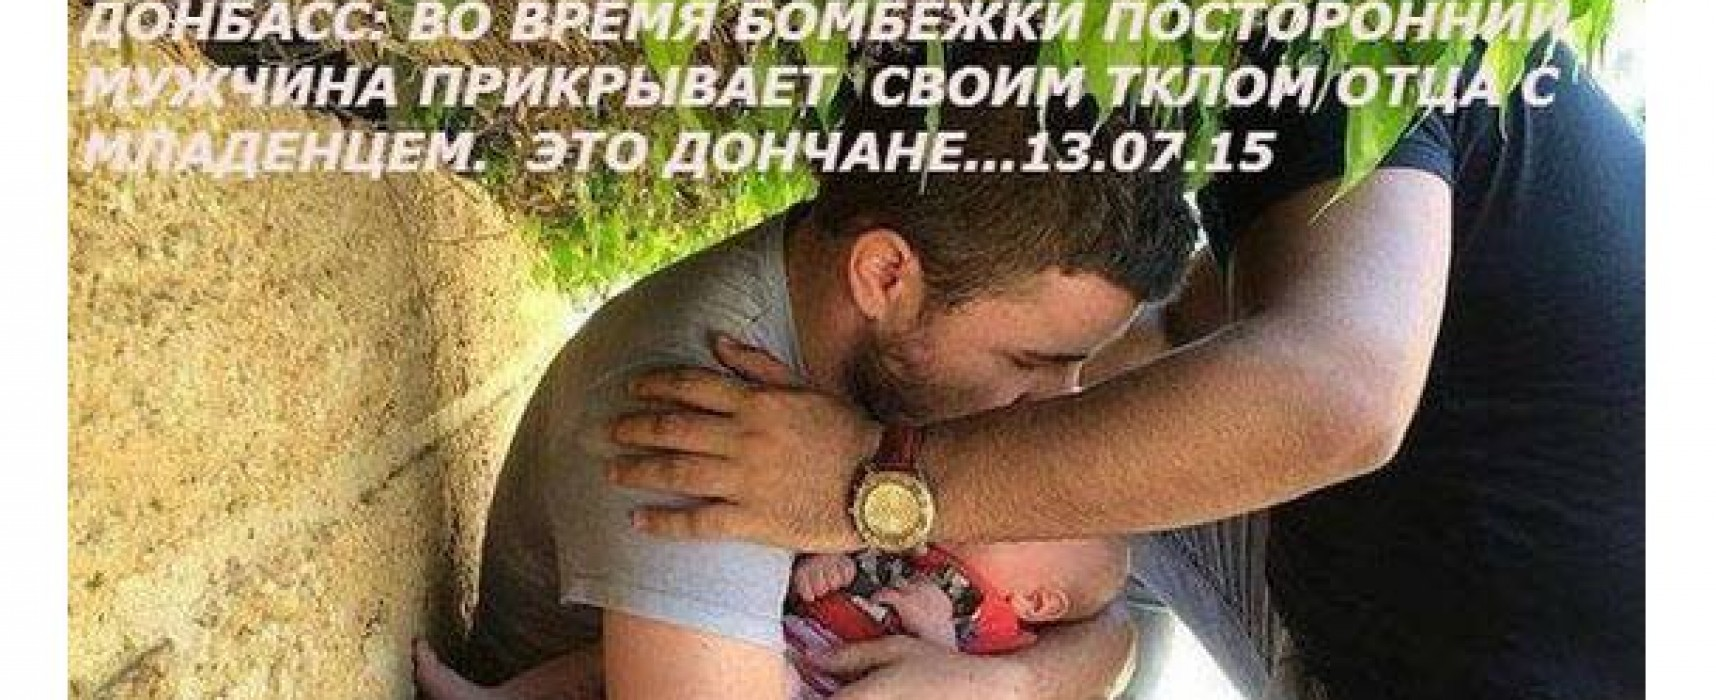 Photo Fake: Shelling in Israel Presented as Donetsk